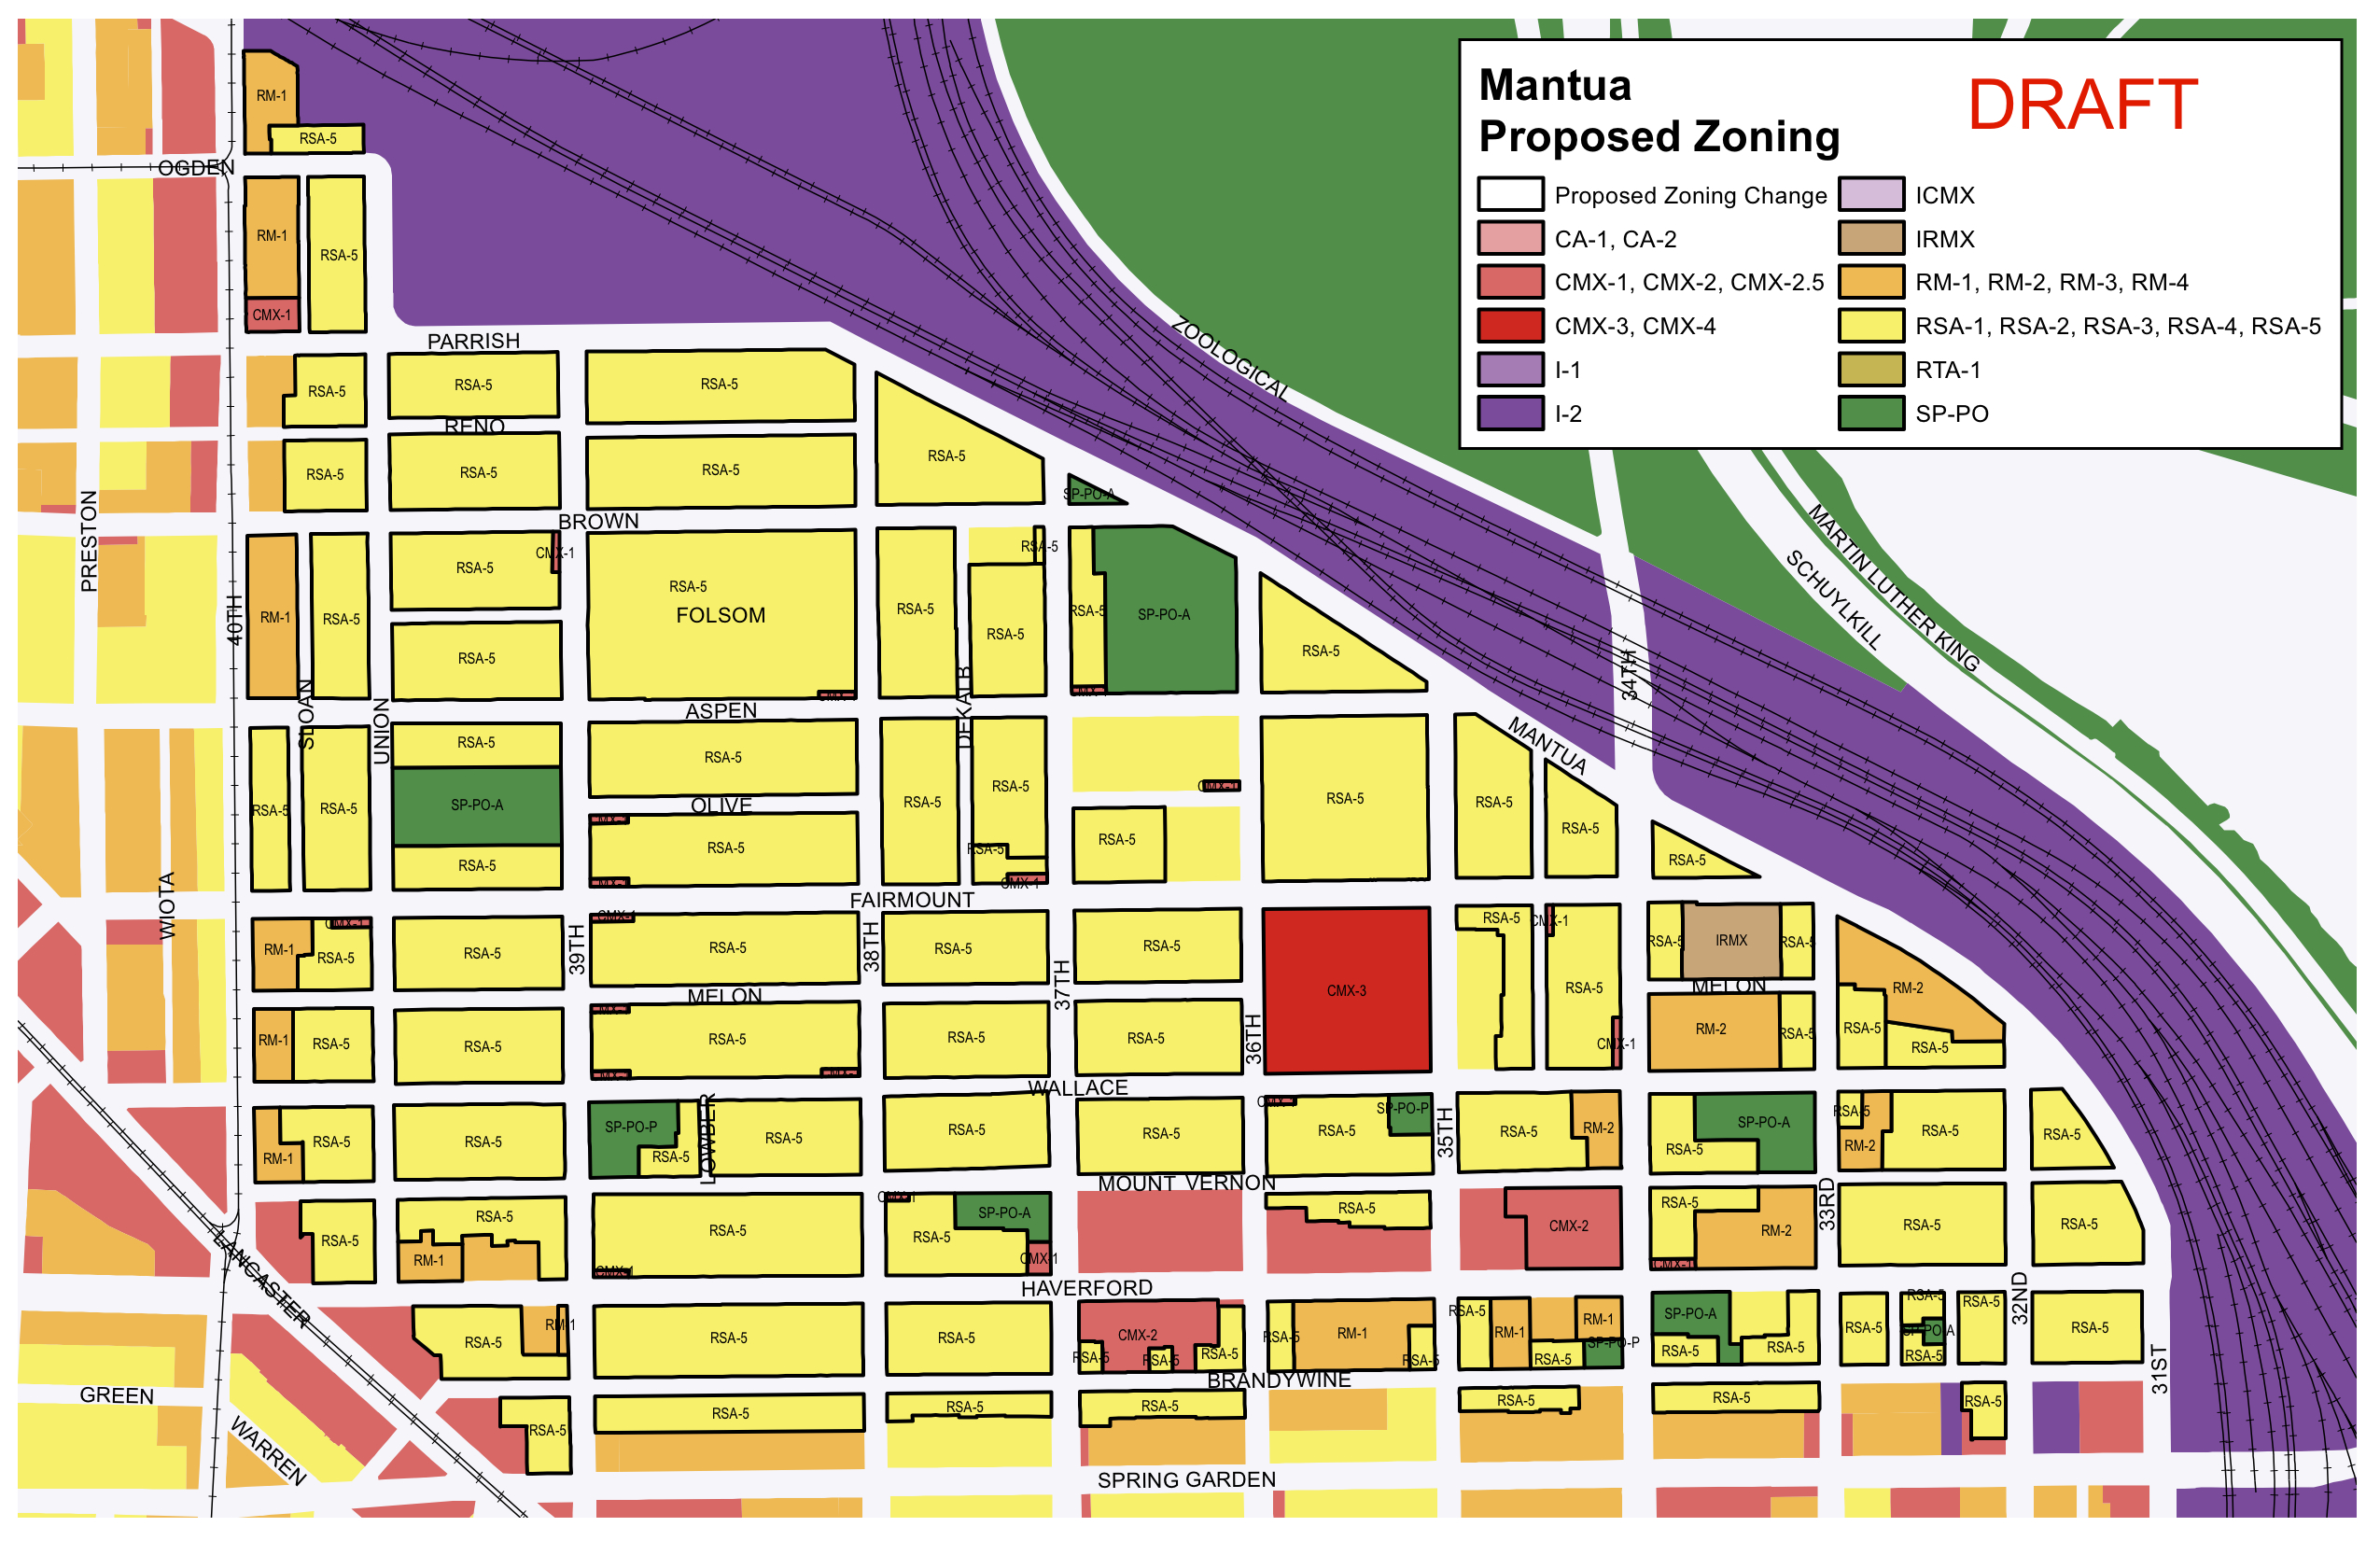 Mantua Proposed Zoning, June 2016